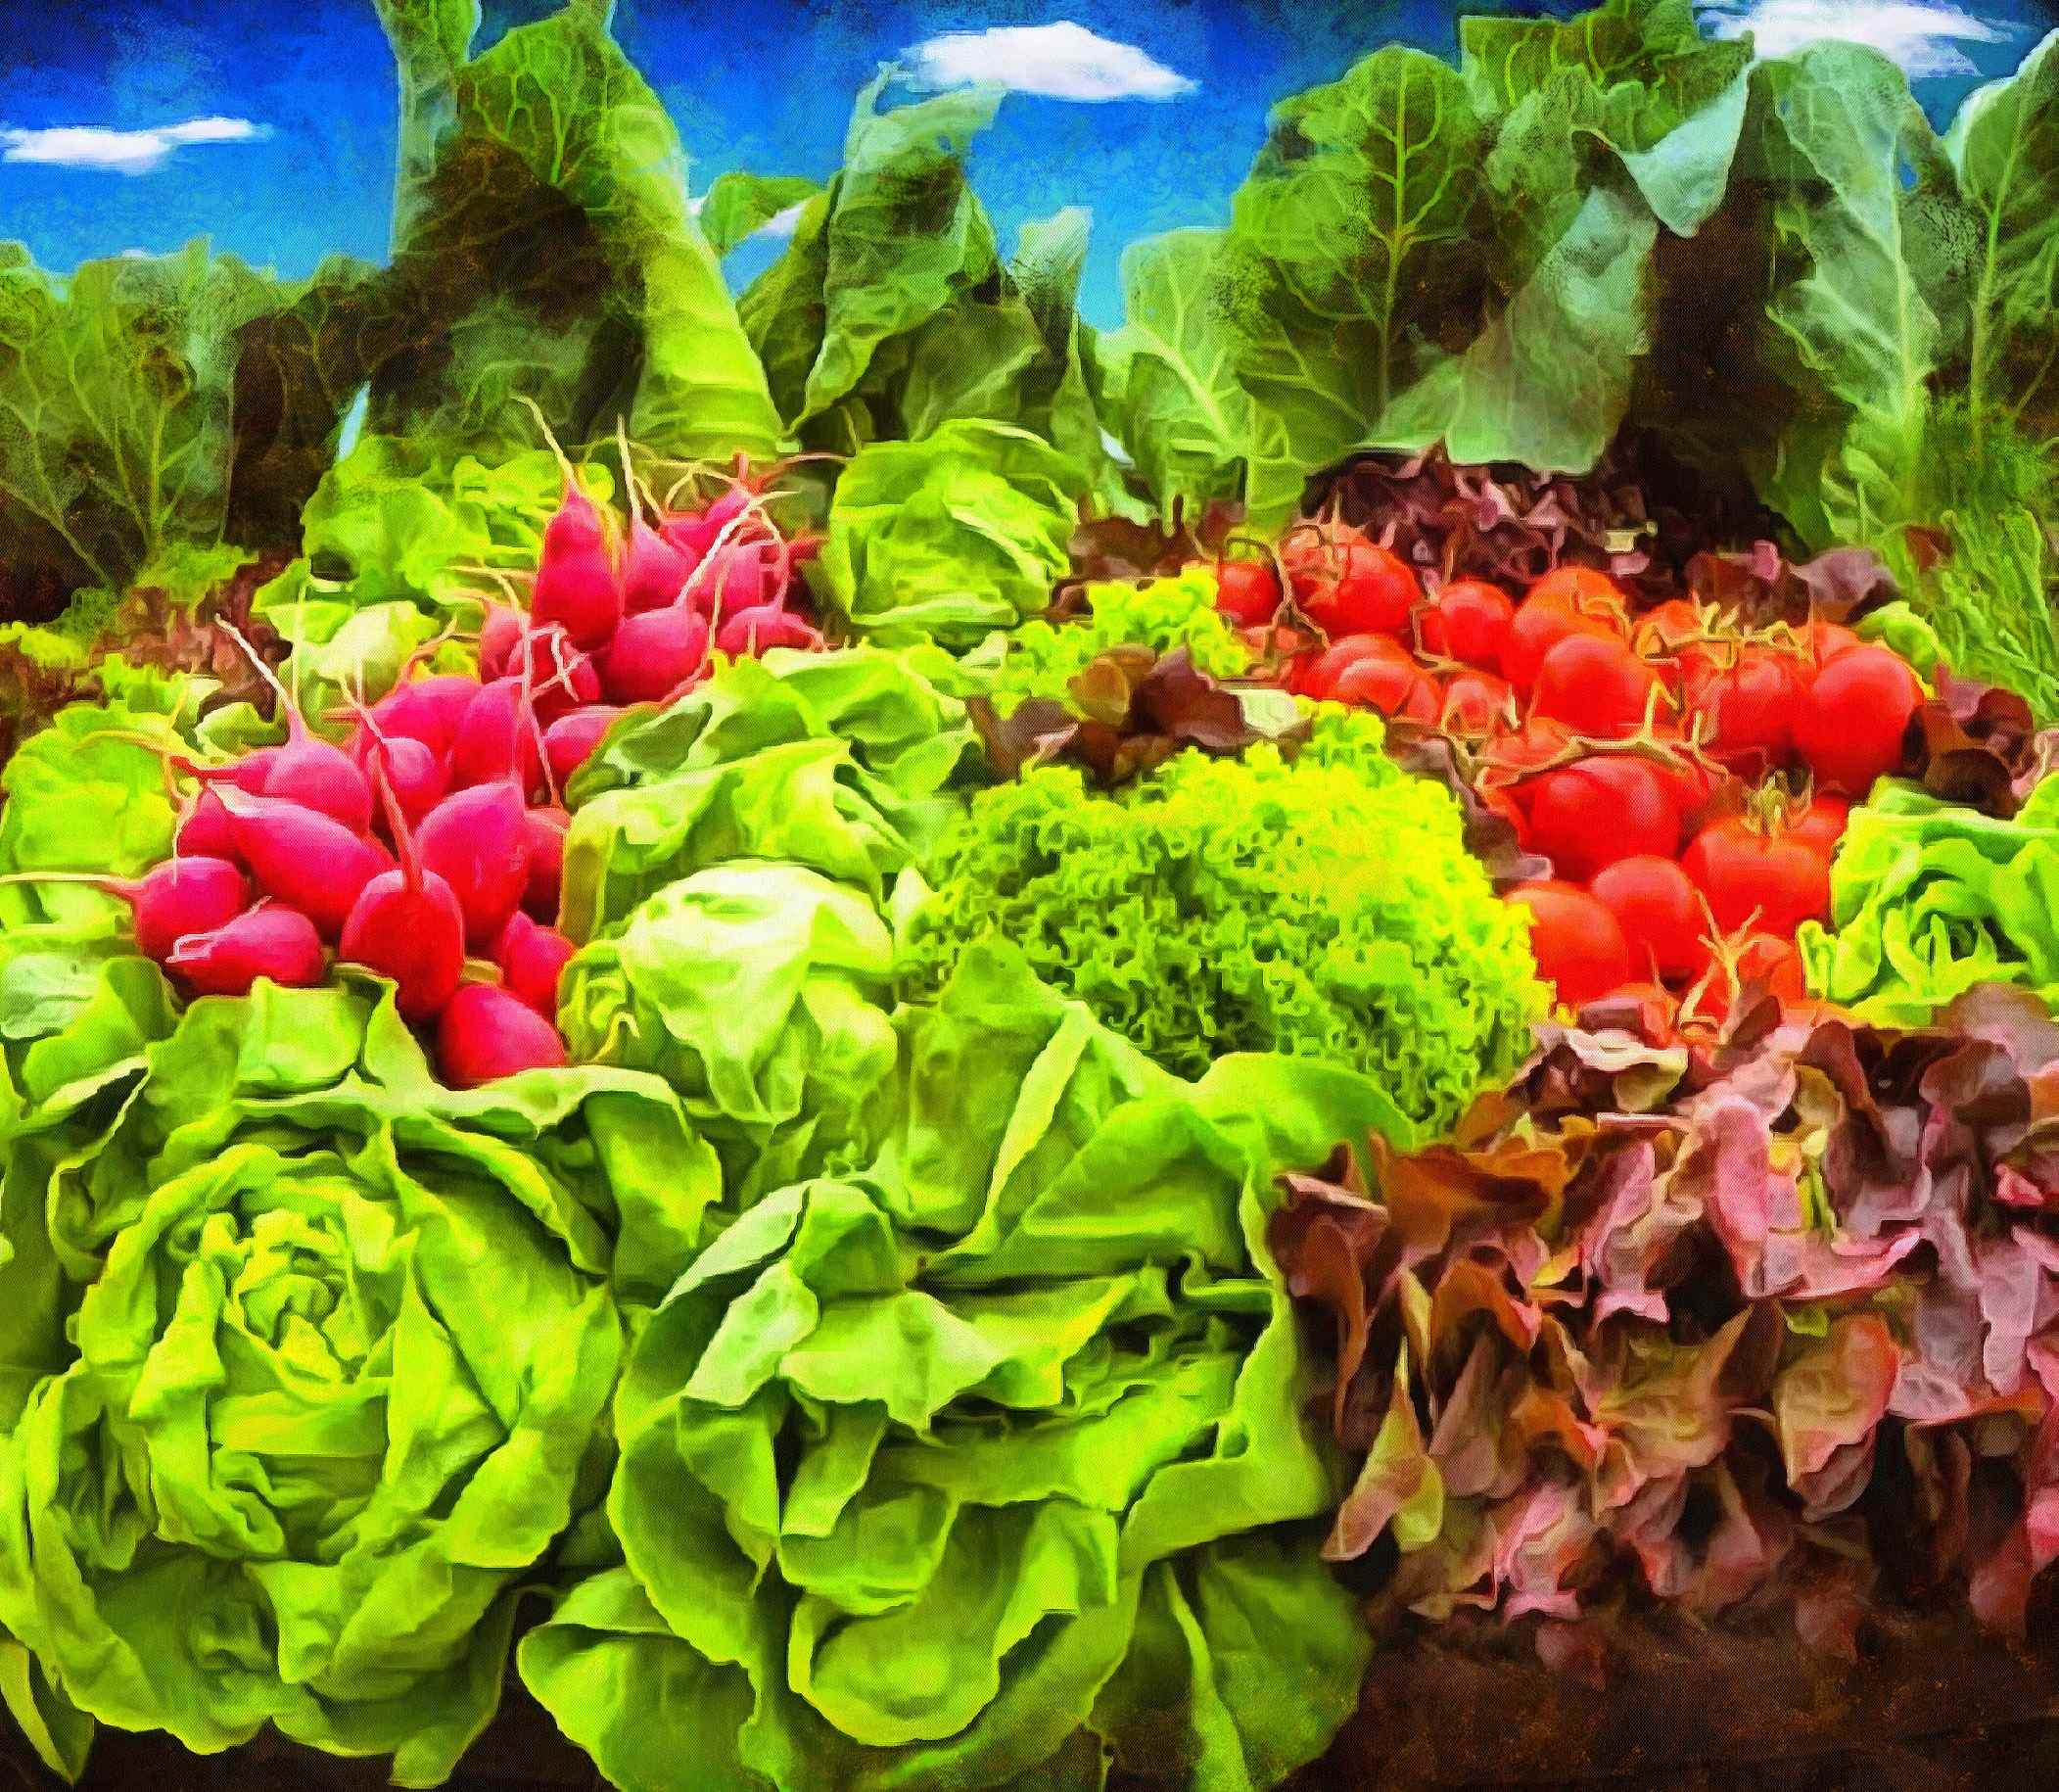 greens, radishes, vegetables, harvest,